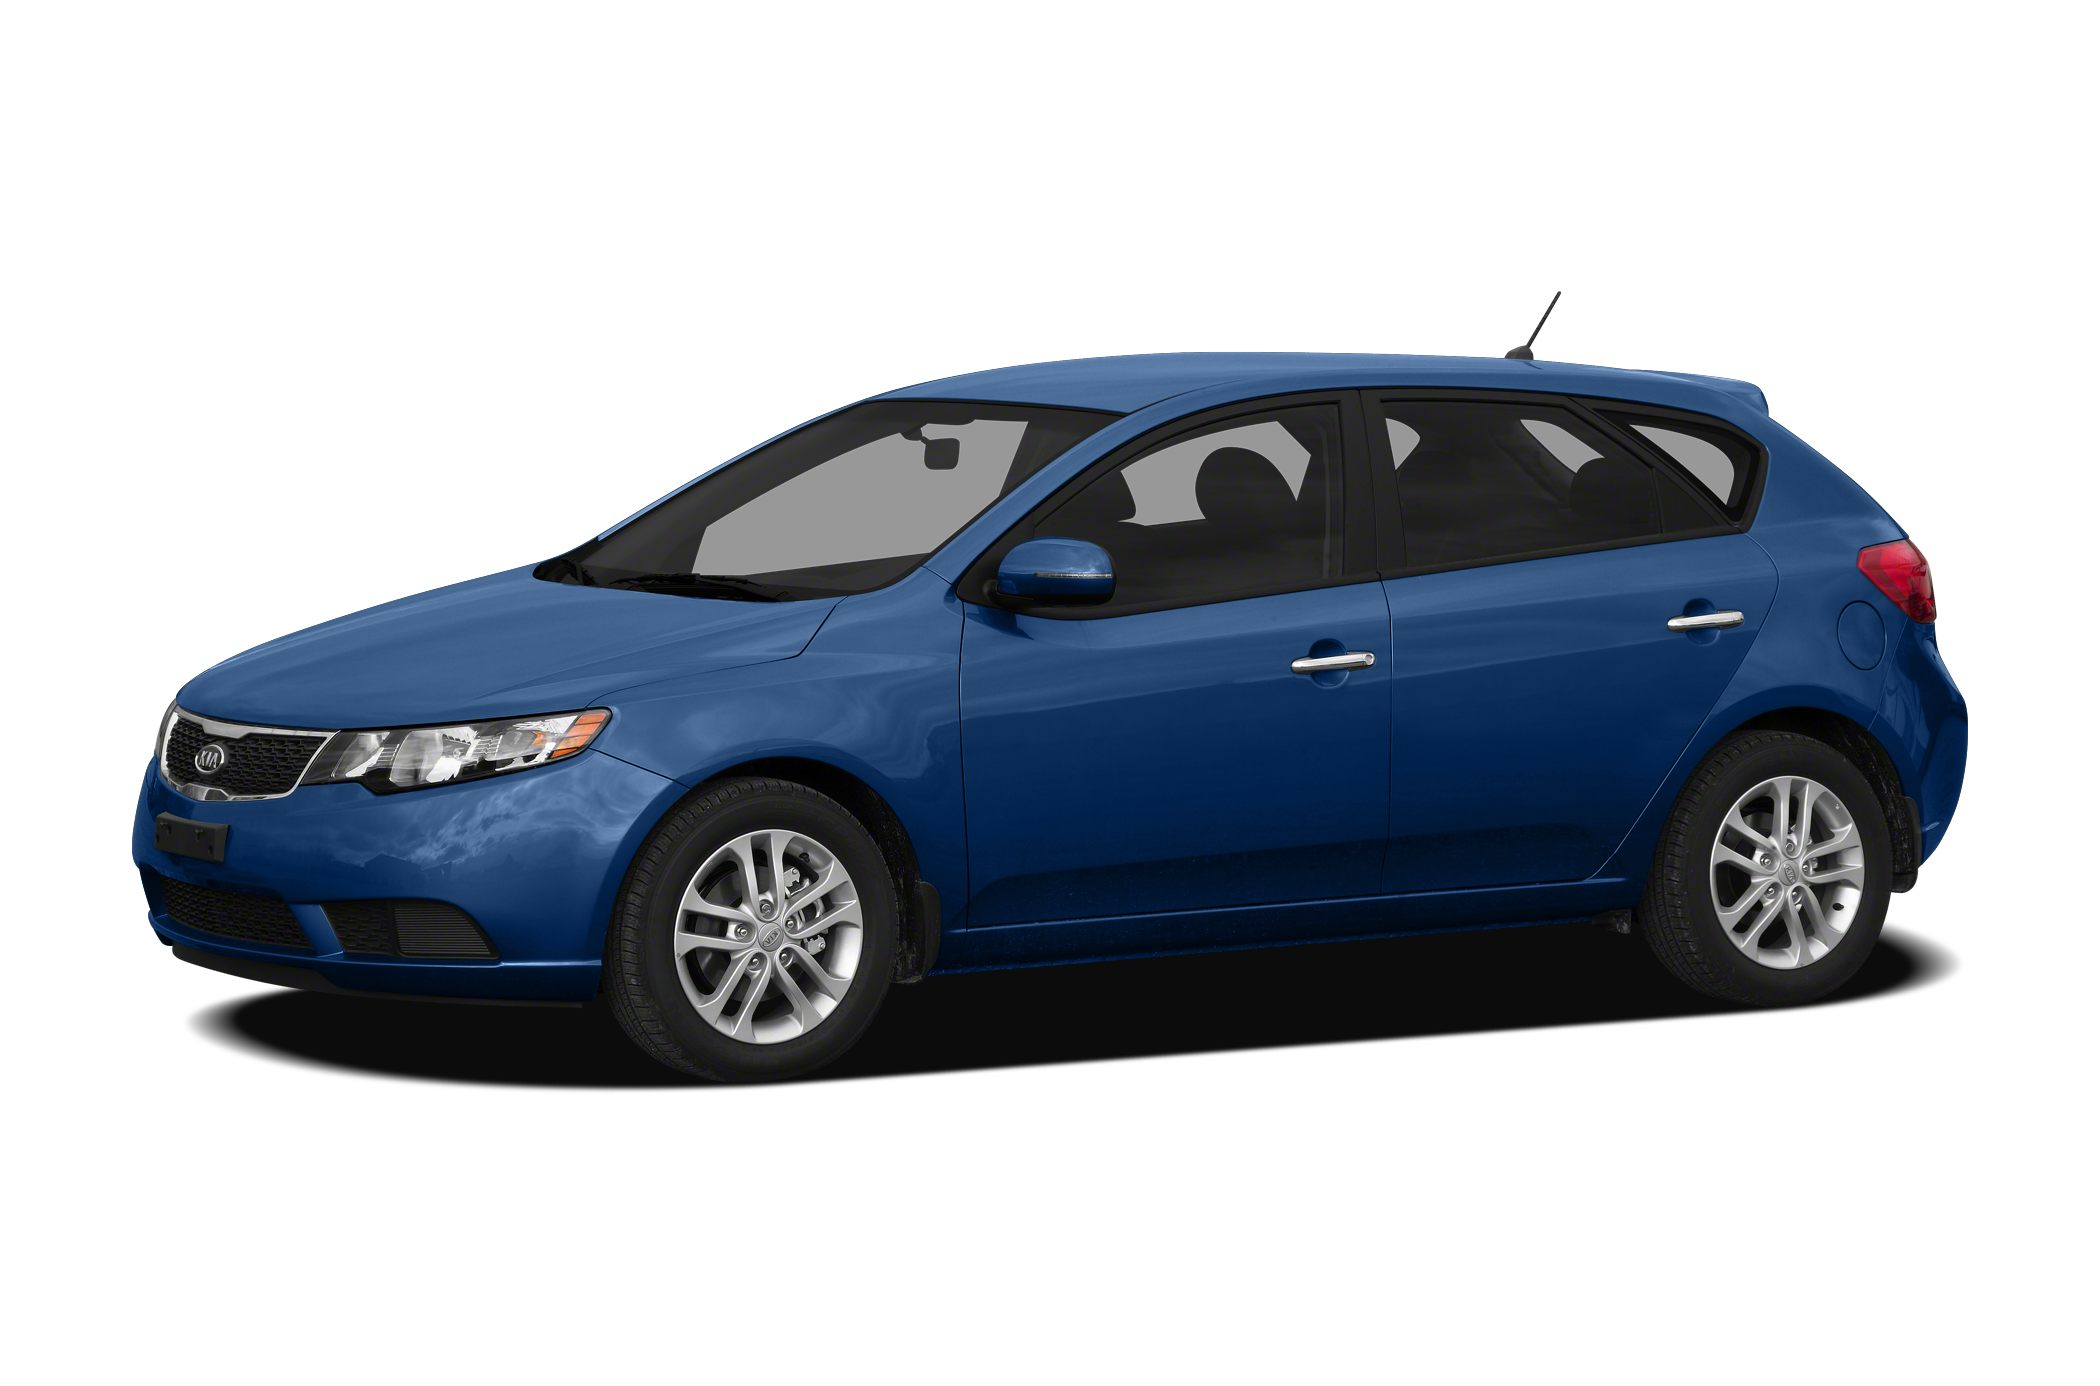 2011 Kia Forte EX LOW LOW MILES One Owner fresh trade Power Windows and Locks Satellite CD with